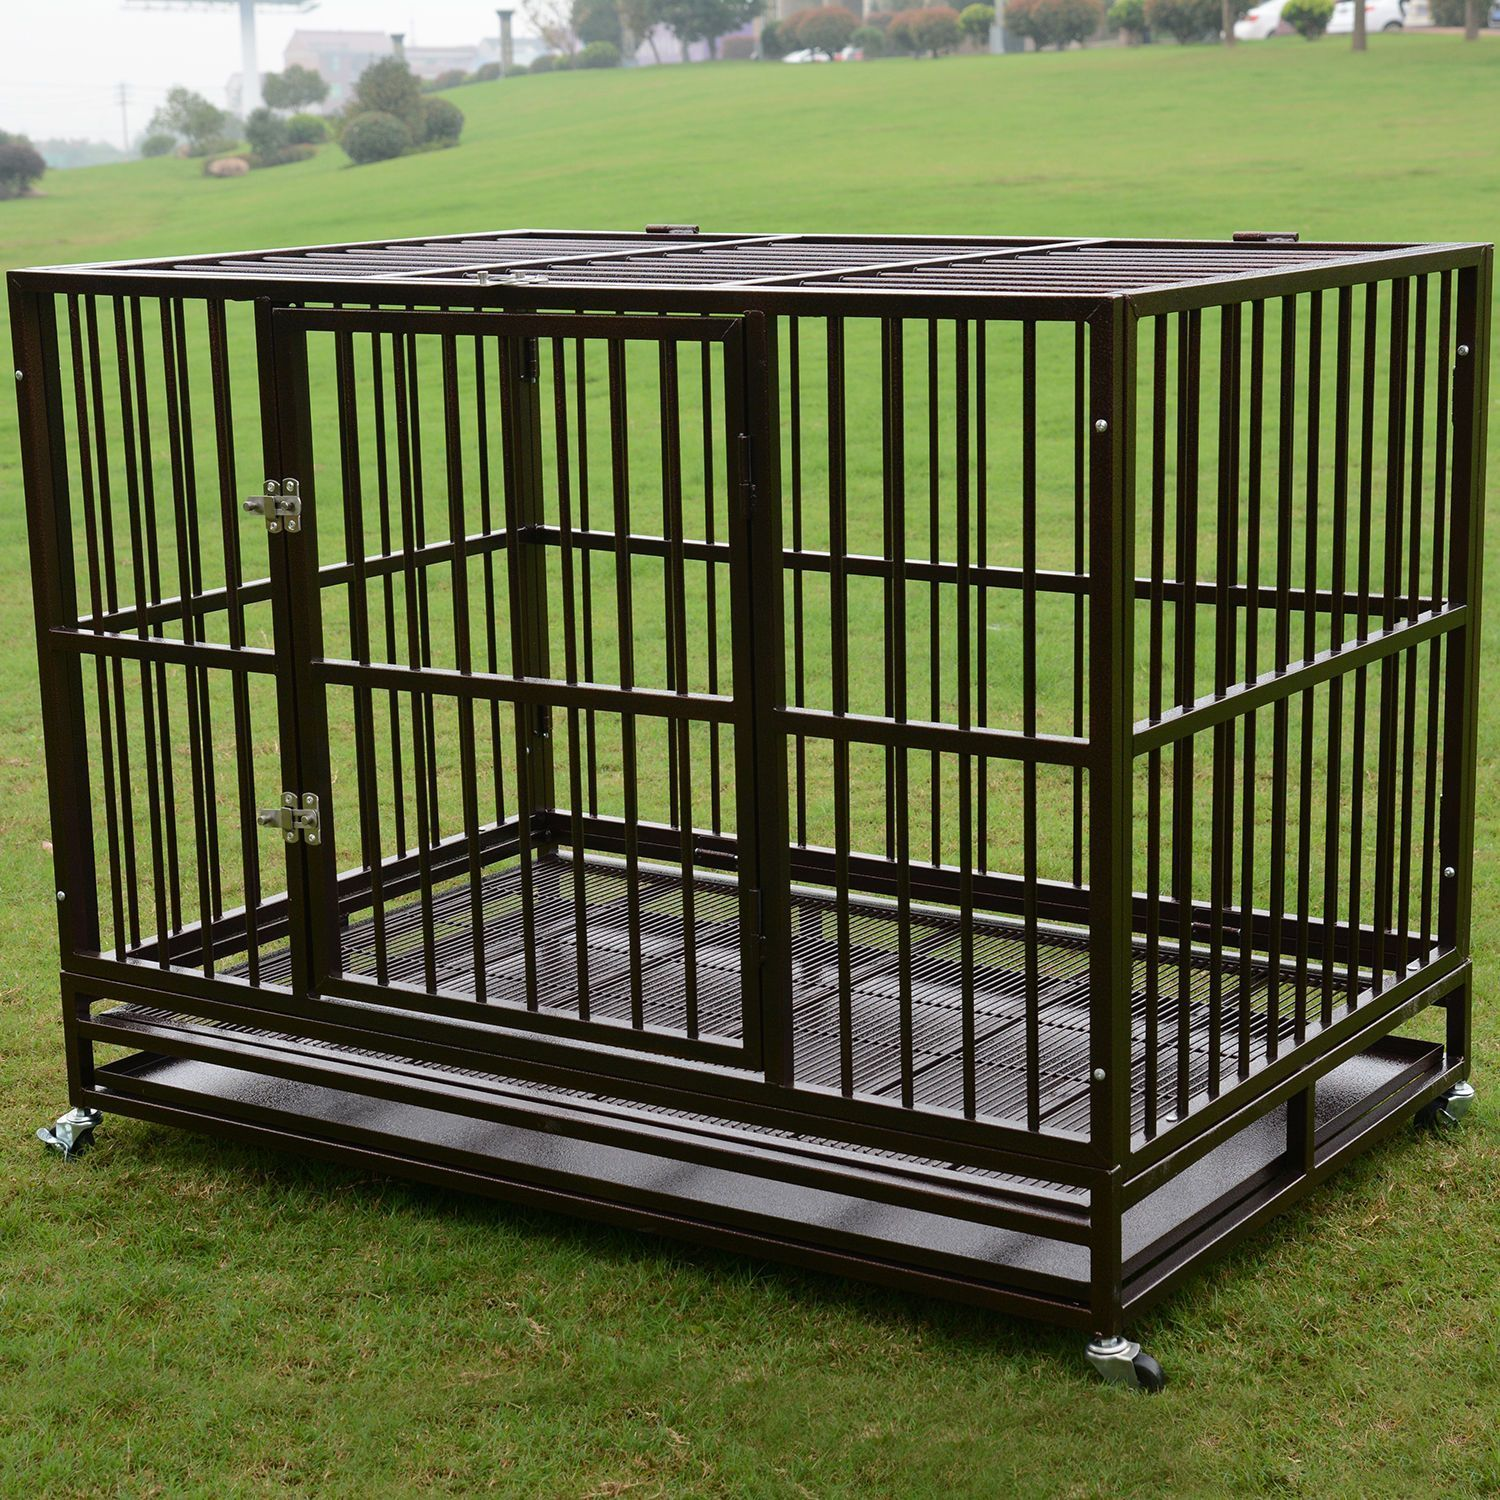 Details about 3XL 48 Dog Crate Kennel Heavy Duty Pet Cage Playpen w Metal Tray Exercise Pan